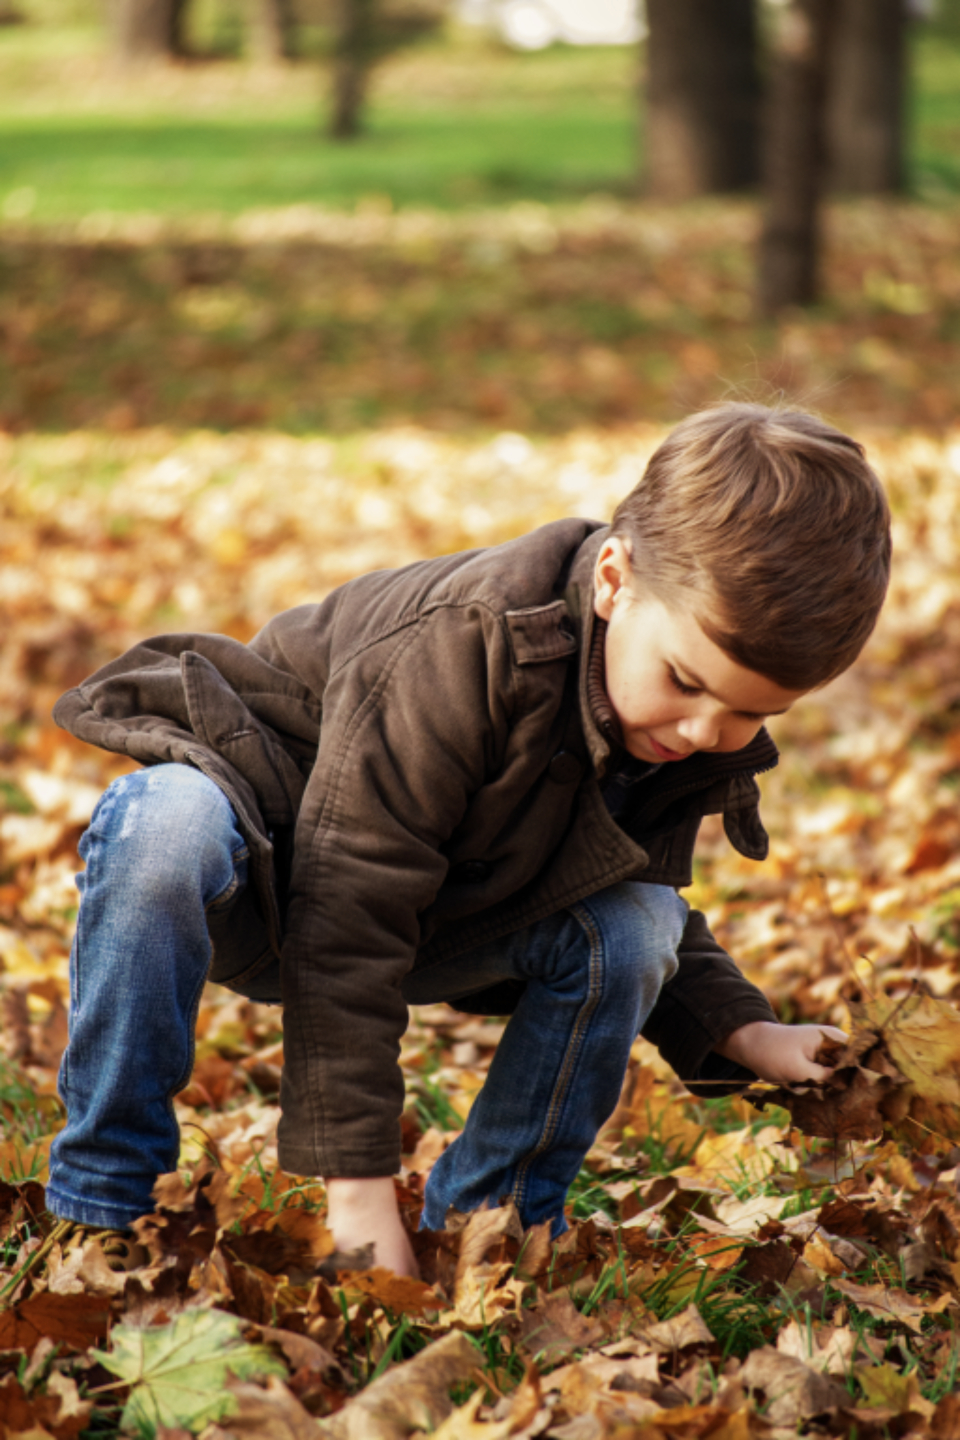 autumn outdoors games nature little fall kid happy childhood season leaf small young boy picking park collecting fashion junior style child clothes toddler child playing brown leaves people son